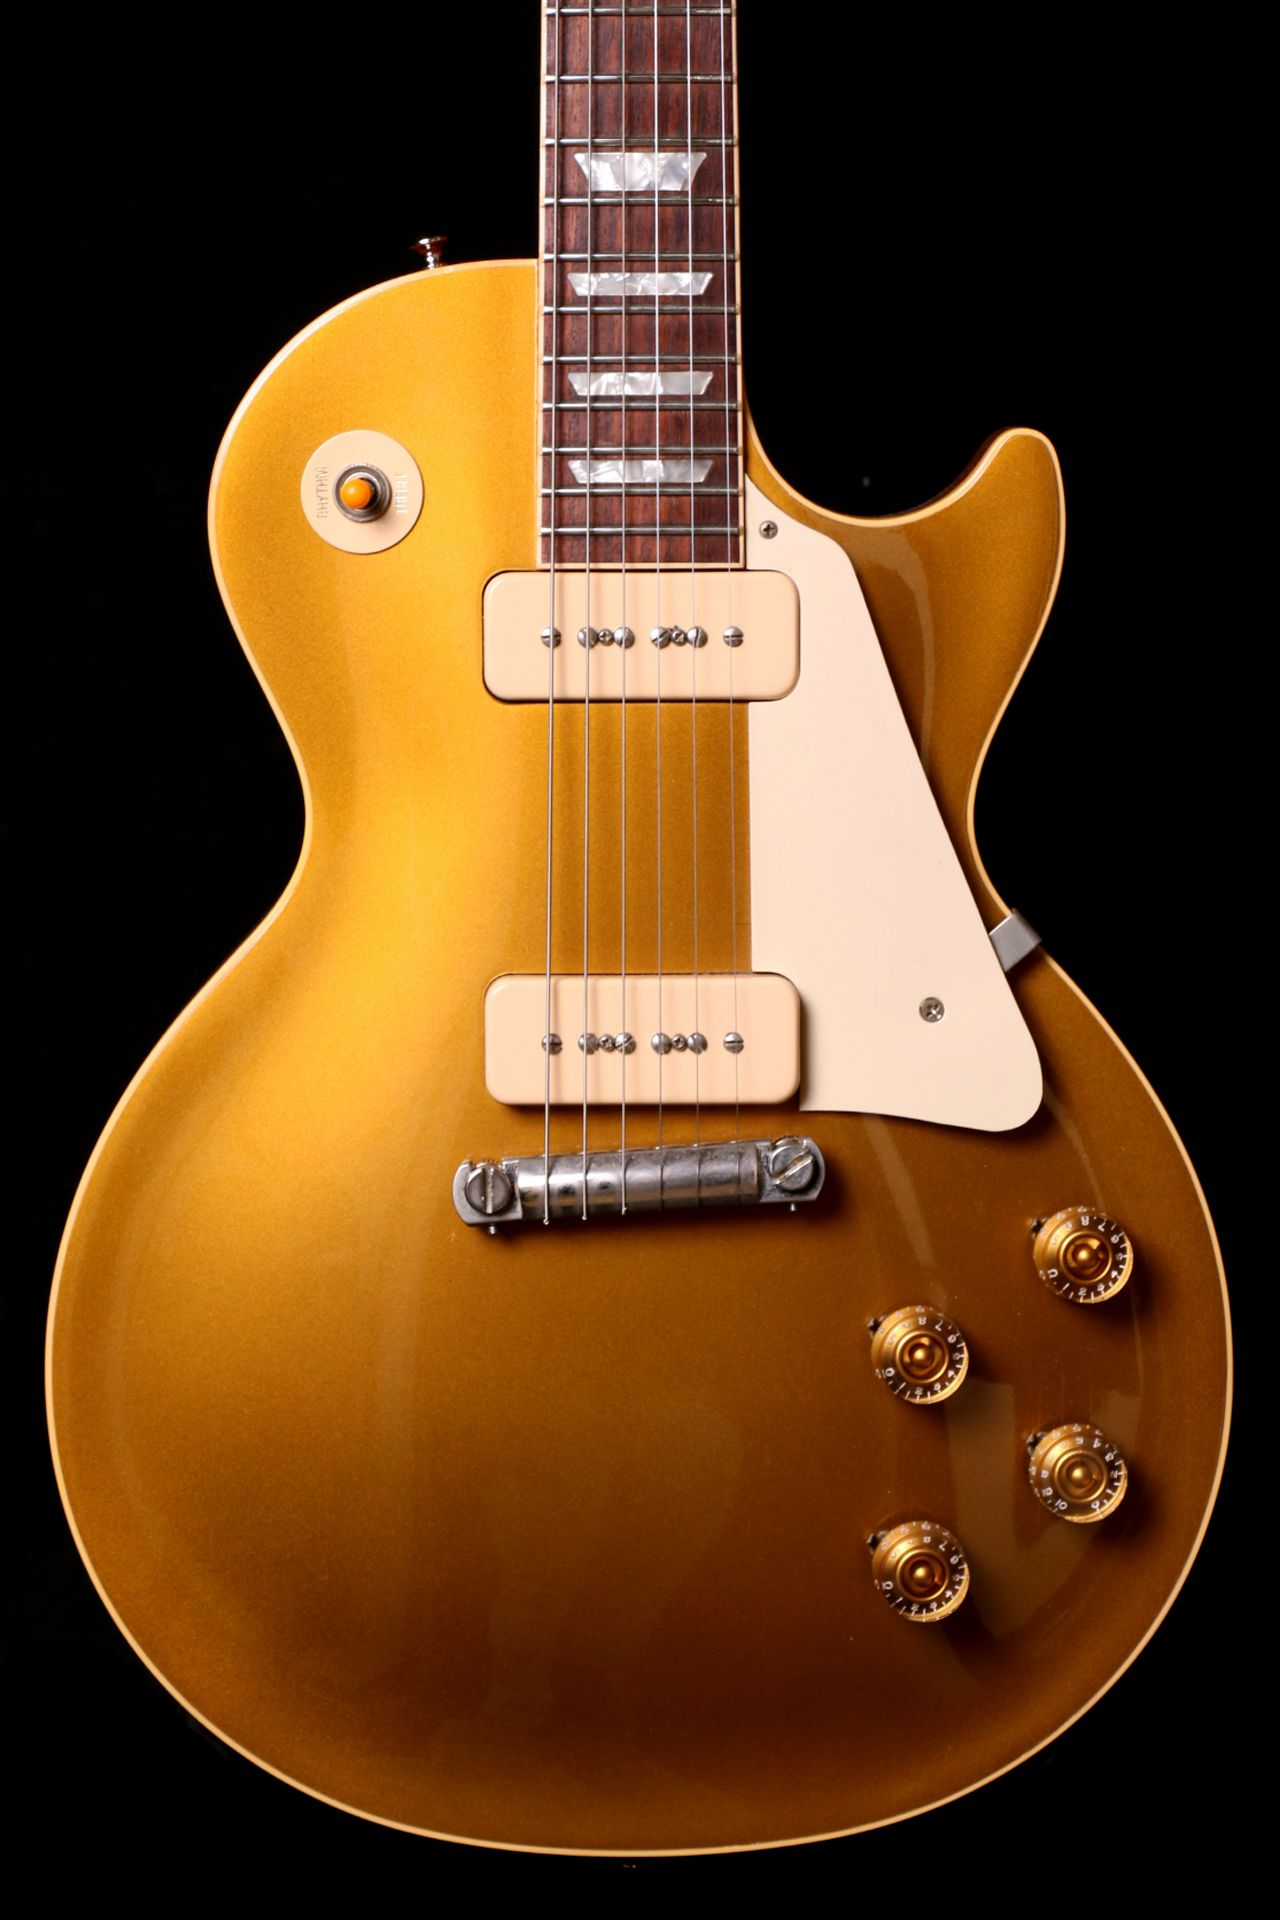 Gibson 1954 Les Paul Gold Top Reissue